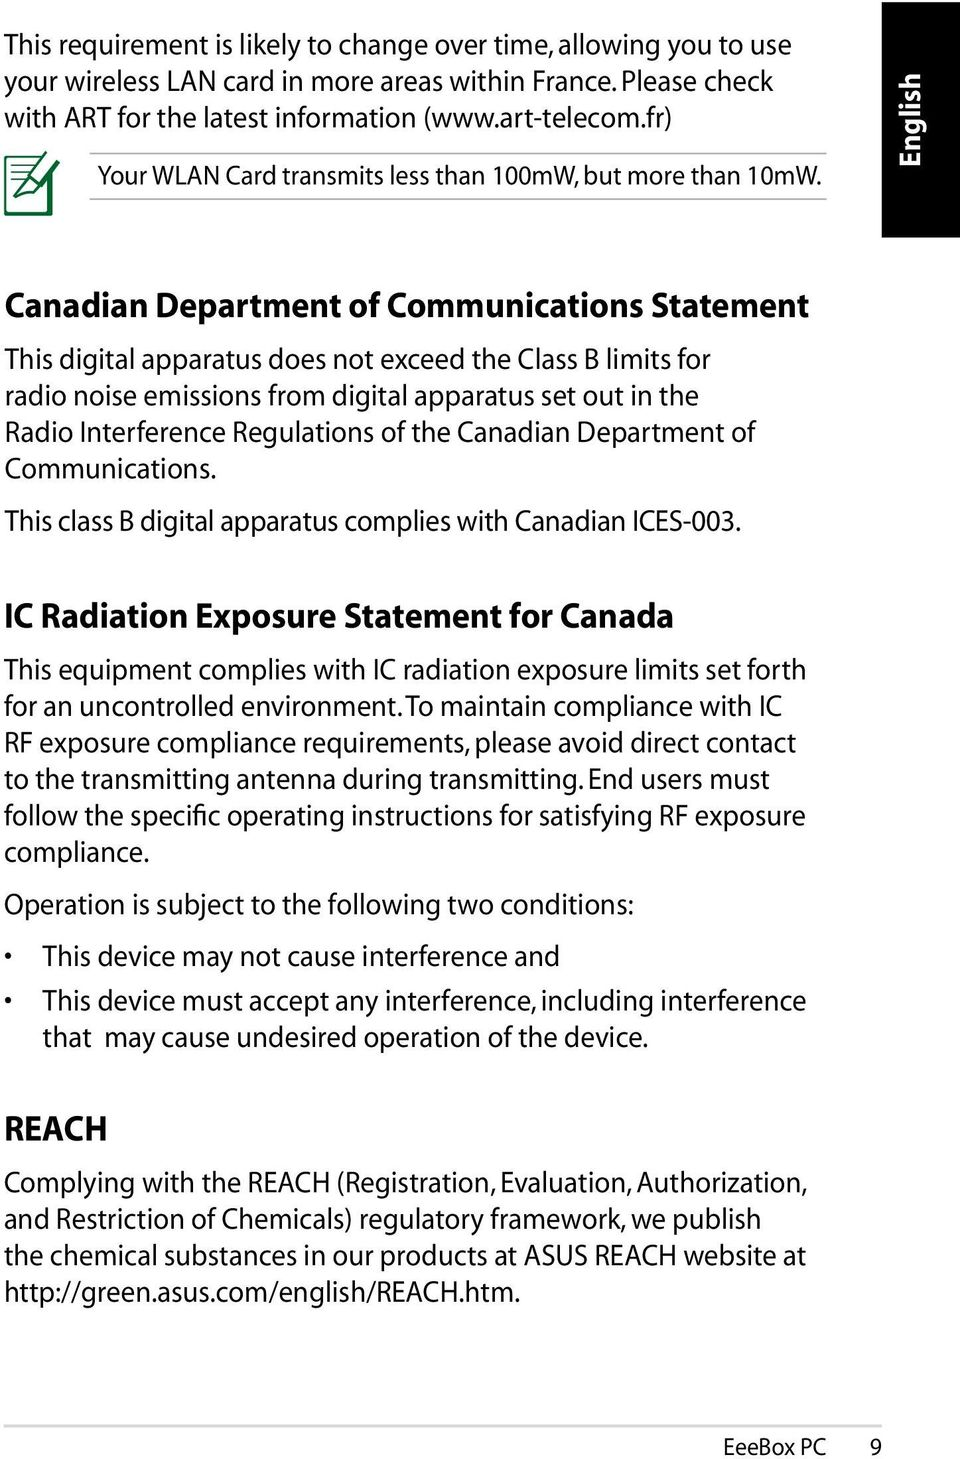 English Canadian Department of Communications Statement This digital apparatus does not exceed the Class B limits for radio noise emissions from digital apparatus set out in the Radio Interference